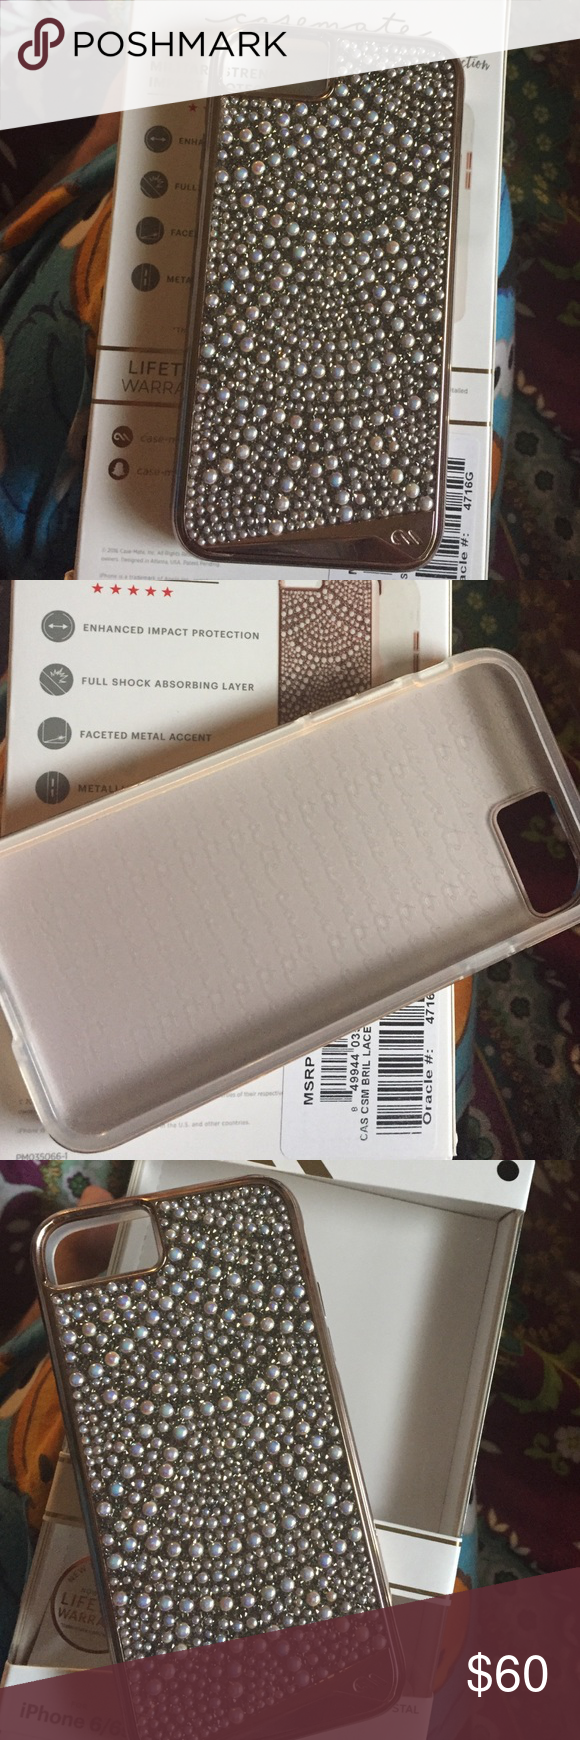 CASEMATE FOR IPHONE 7 & IPHONE 6 GENUINE CYSTAL! Brand new case mate! Comes with box! Reasons to sell is that i have more cases! Dual protection Casemate Accessories Phone Cases